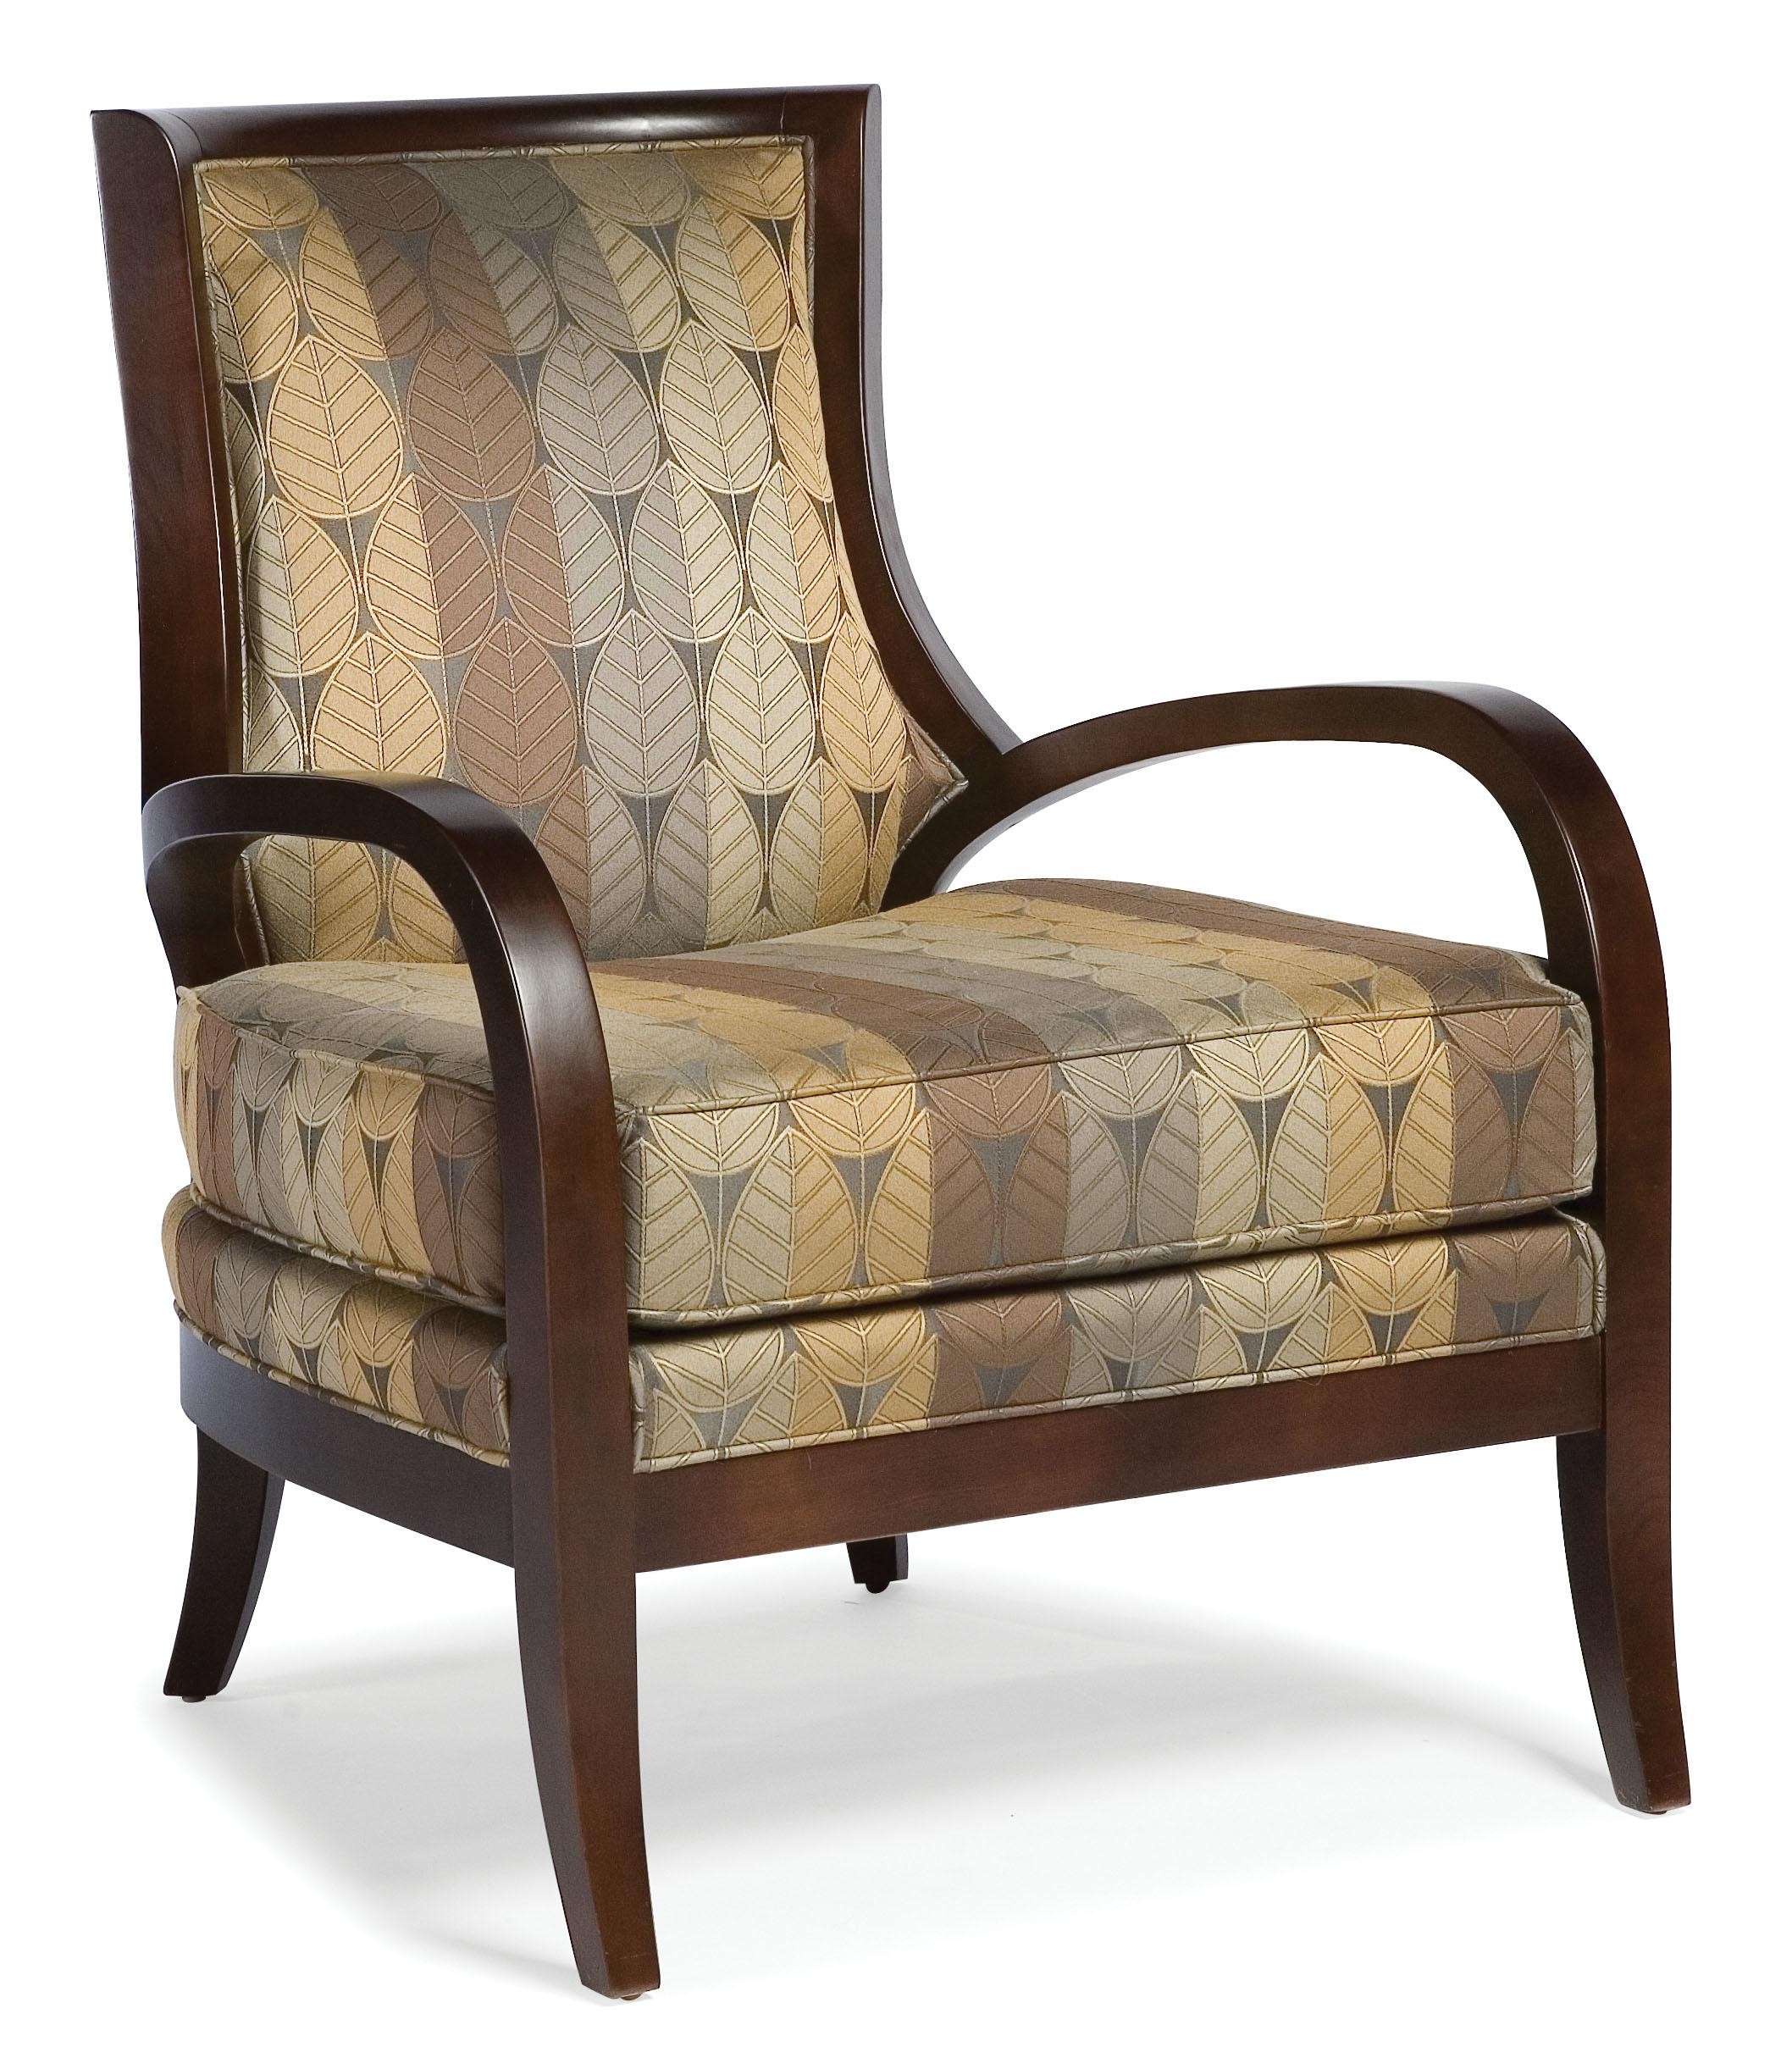 Fairfield Chairs Stationary Exposed Wood Chair - Item Number: 6065-01